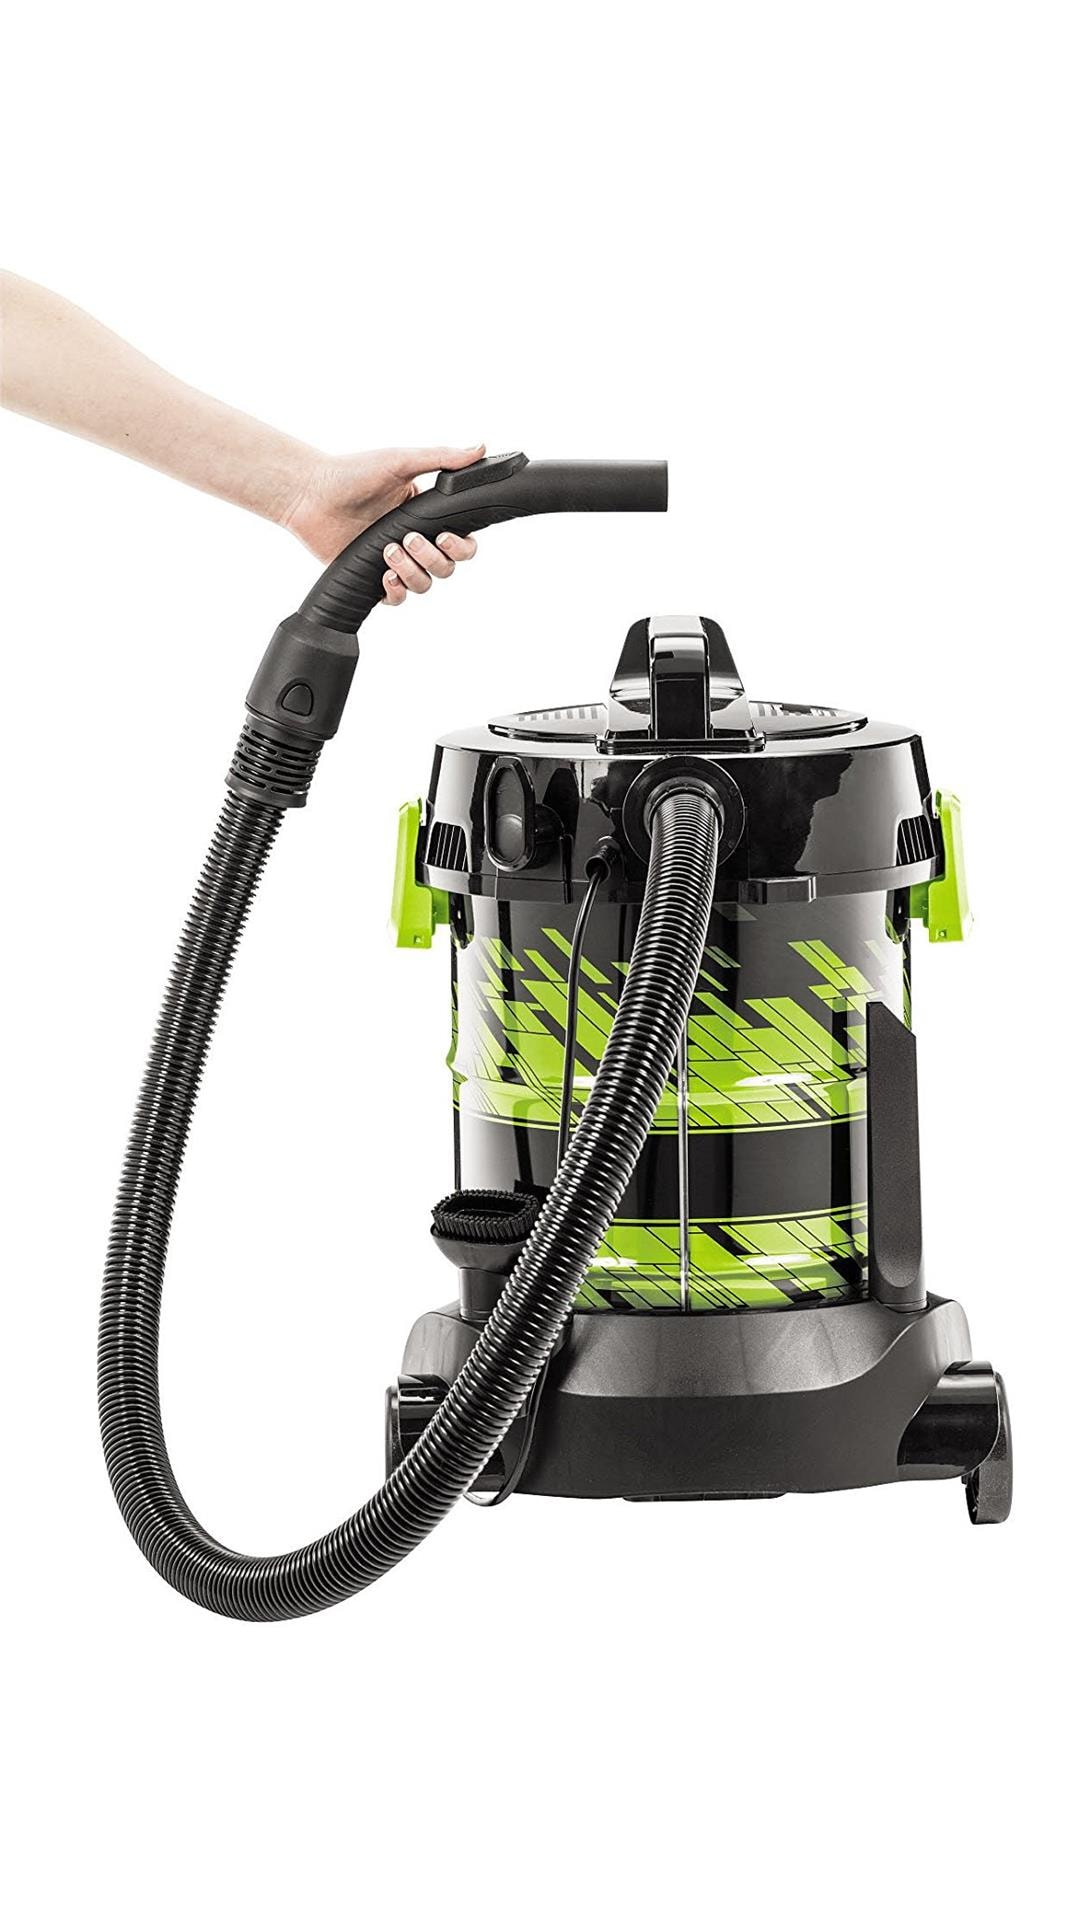 Bissell 2026E Dry Vacuum Cleaner (Black & Green)